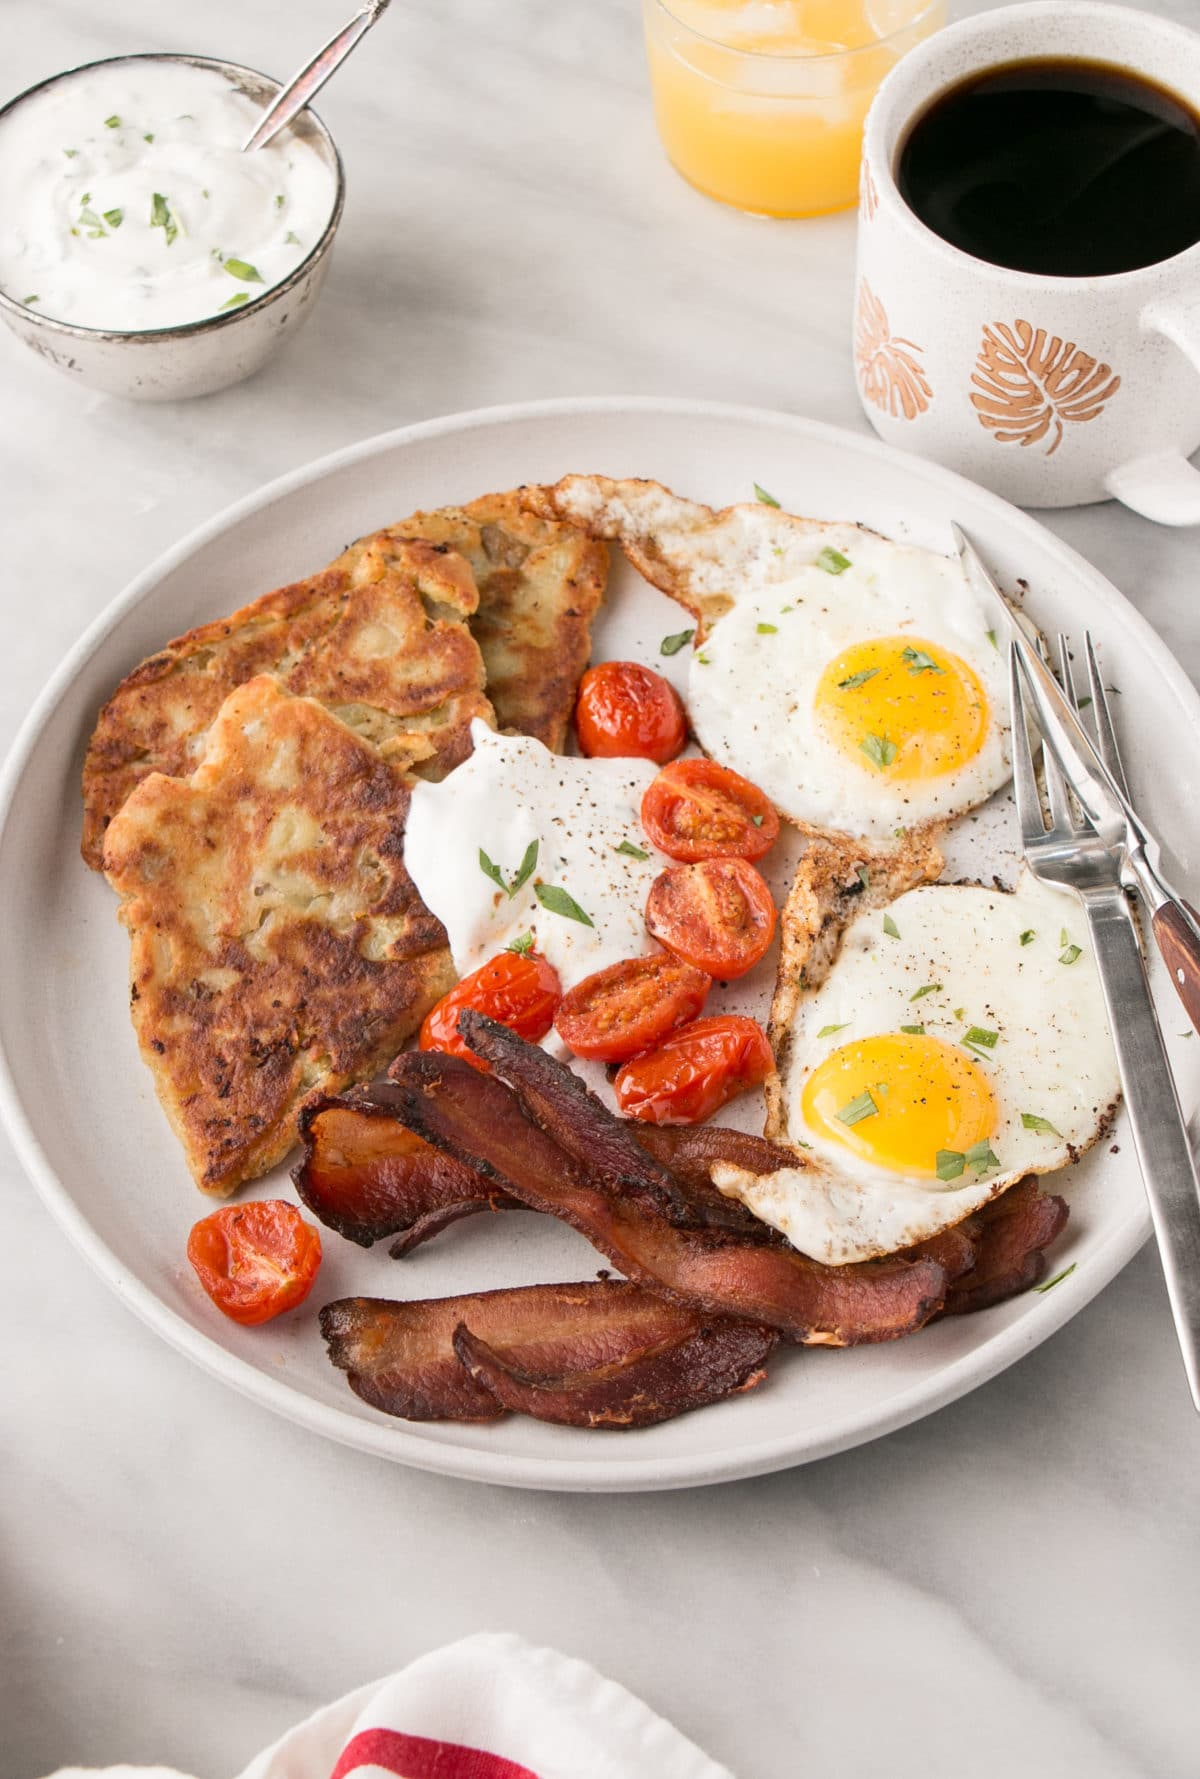 Scottish Potato Scones on a plate with eggs, bacon and tomatoes